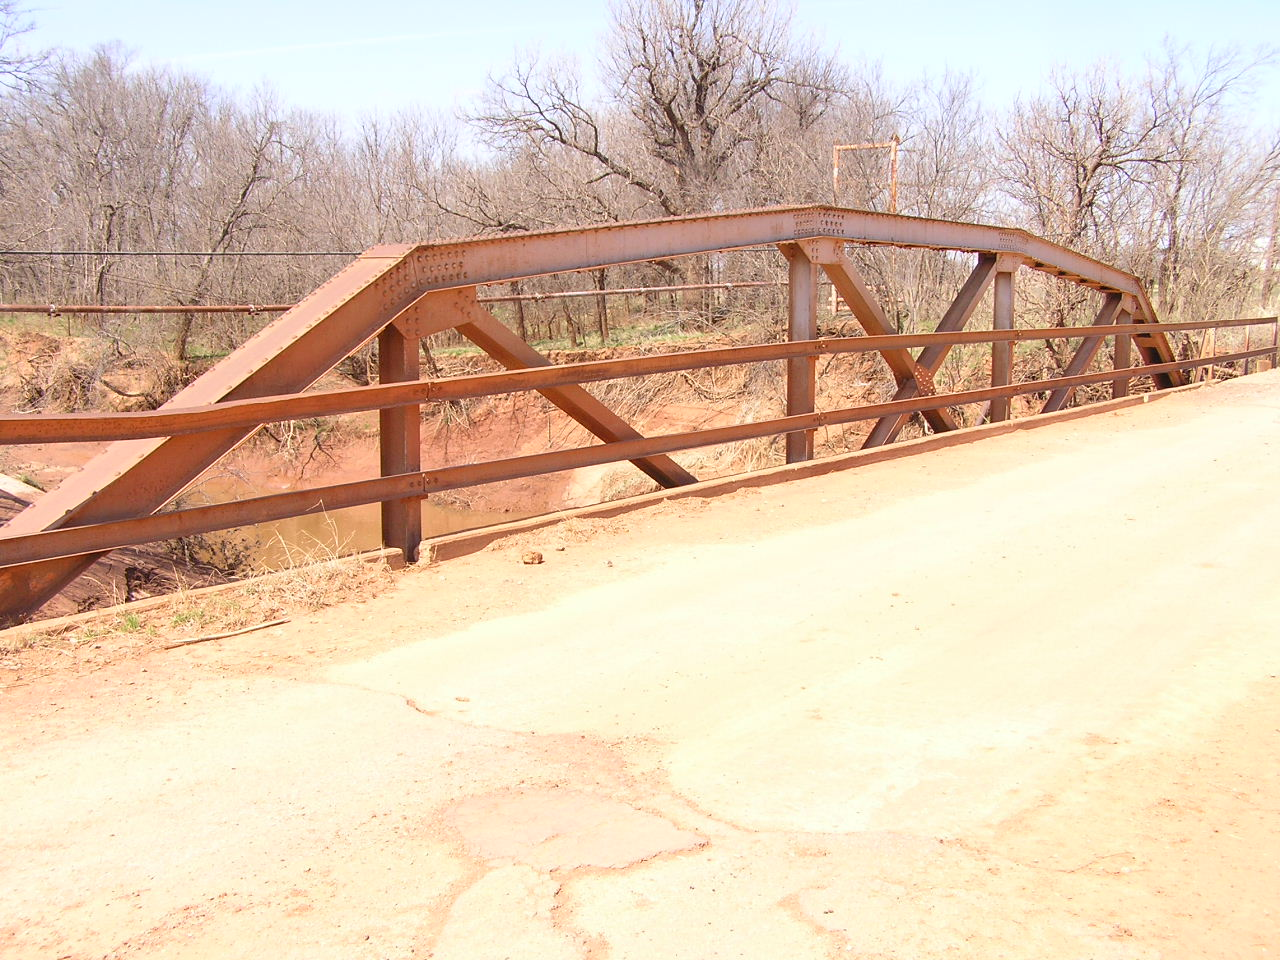 Truss Bridges In Oklahoma Warren Bridge Diagram The First Was Probably A Above Typical Early Example Of Channel Rail From 1921 Note This Railing Continues Onto Approach Span